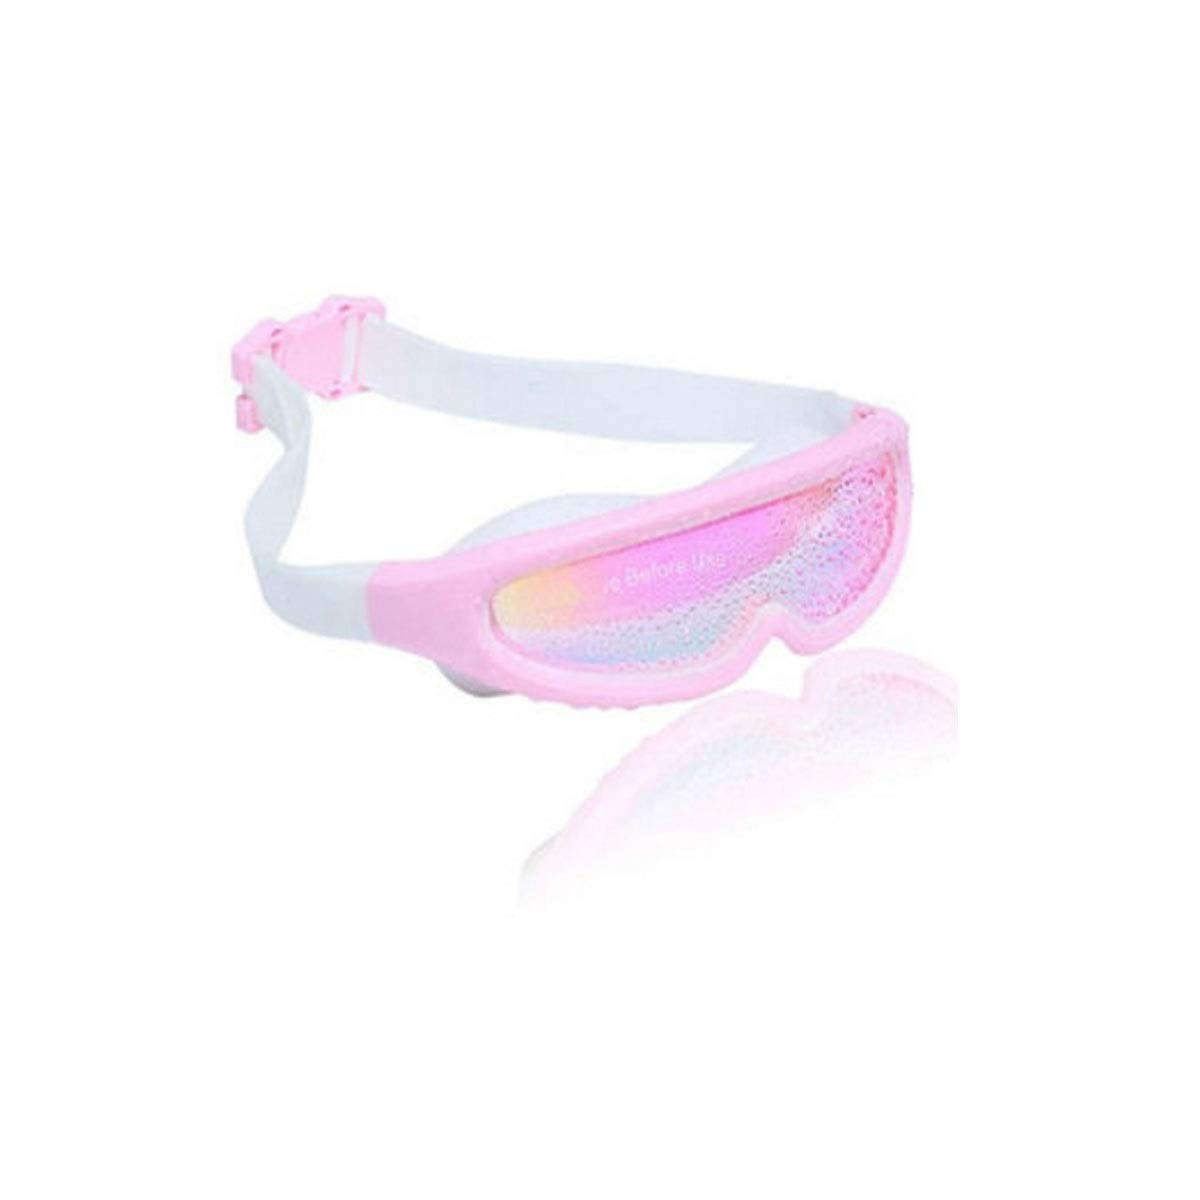 Pink 2 Yougou01 Goggles, Large Box Set Goggles, HD Waterproof AntiFog Goggles, Youthful, Red Exquisite